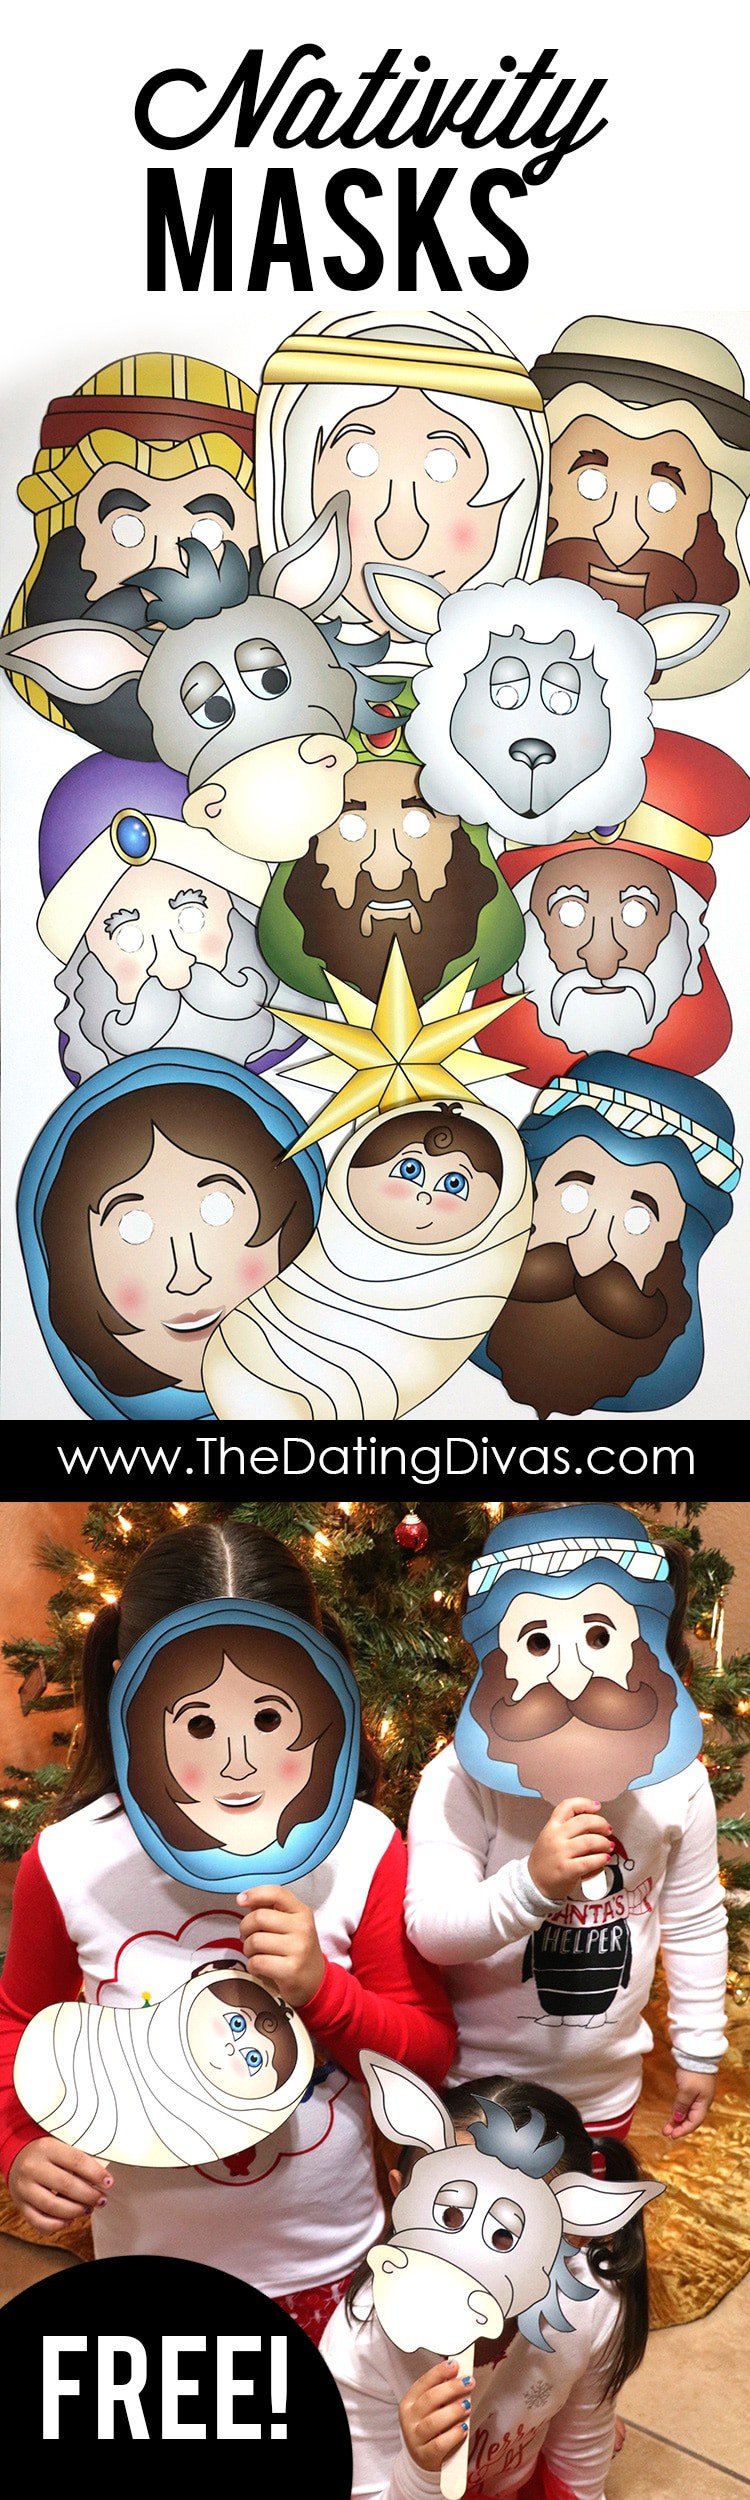 Free Printable Nativity Masks Or Color Your Own Masks And Story Script Homeschool Giveaways